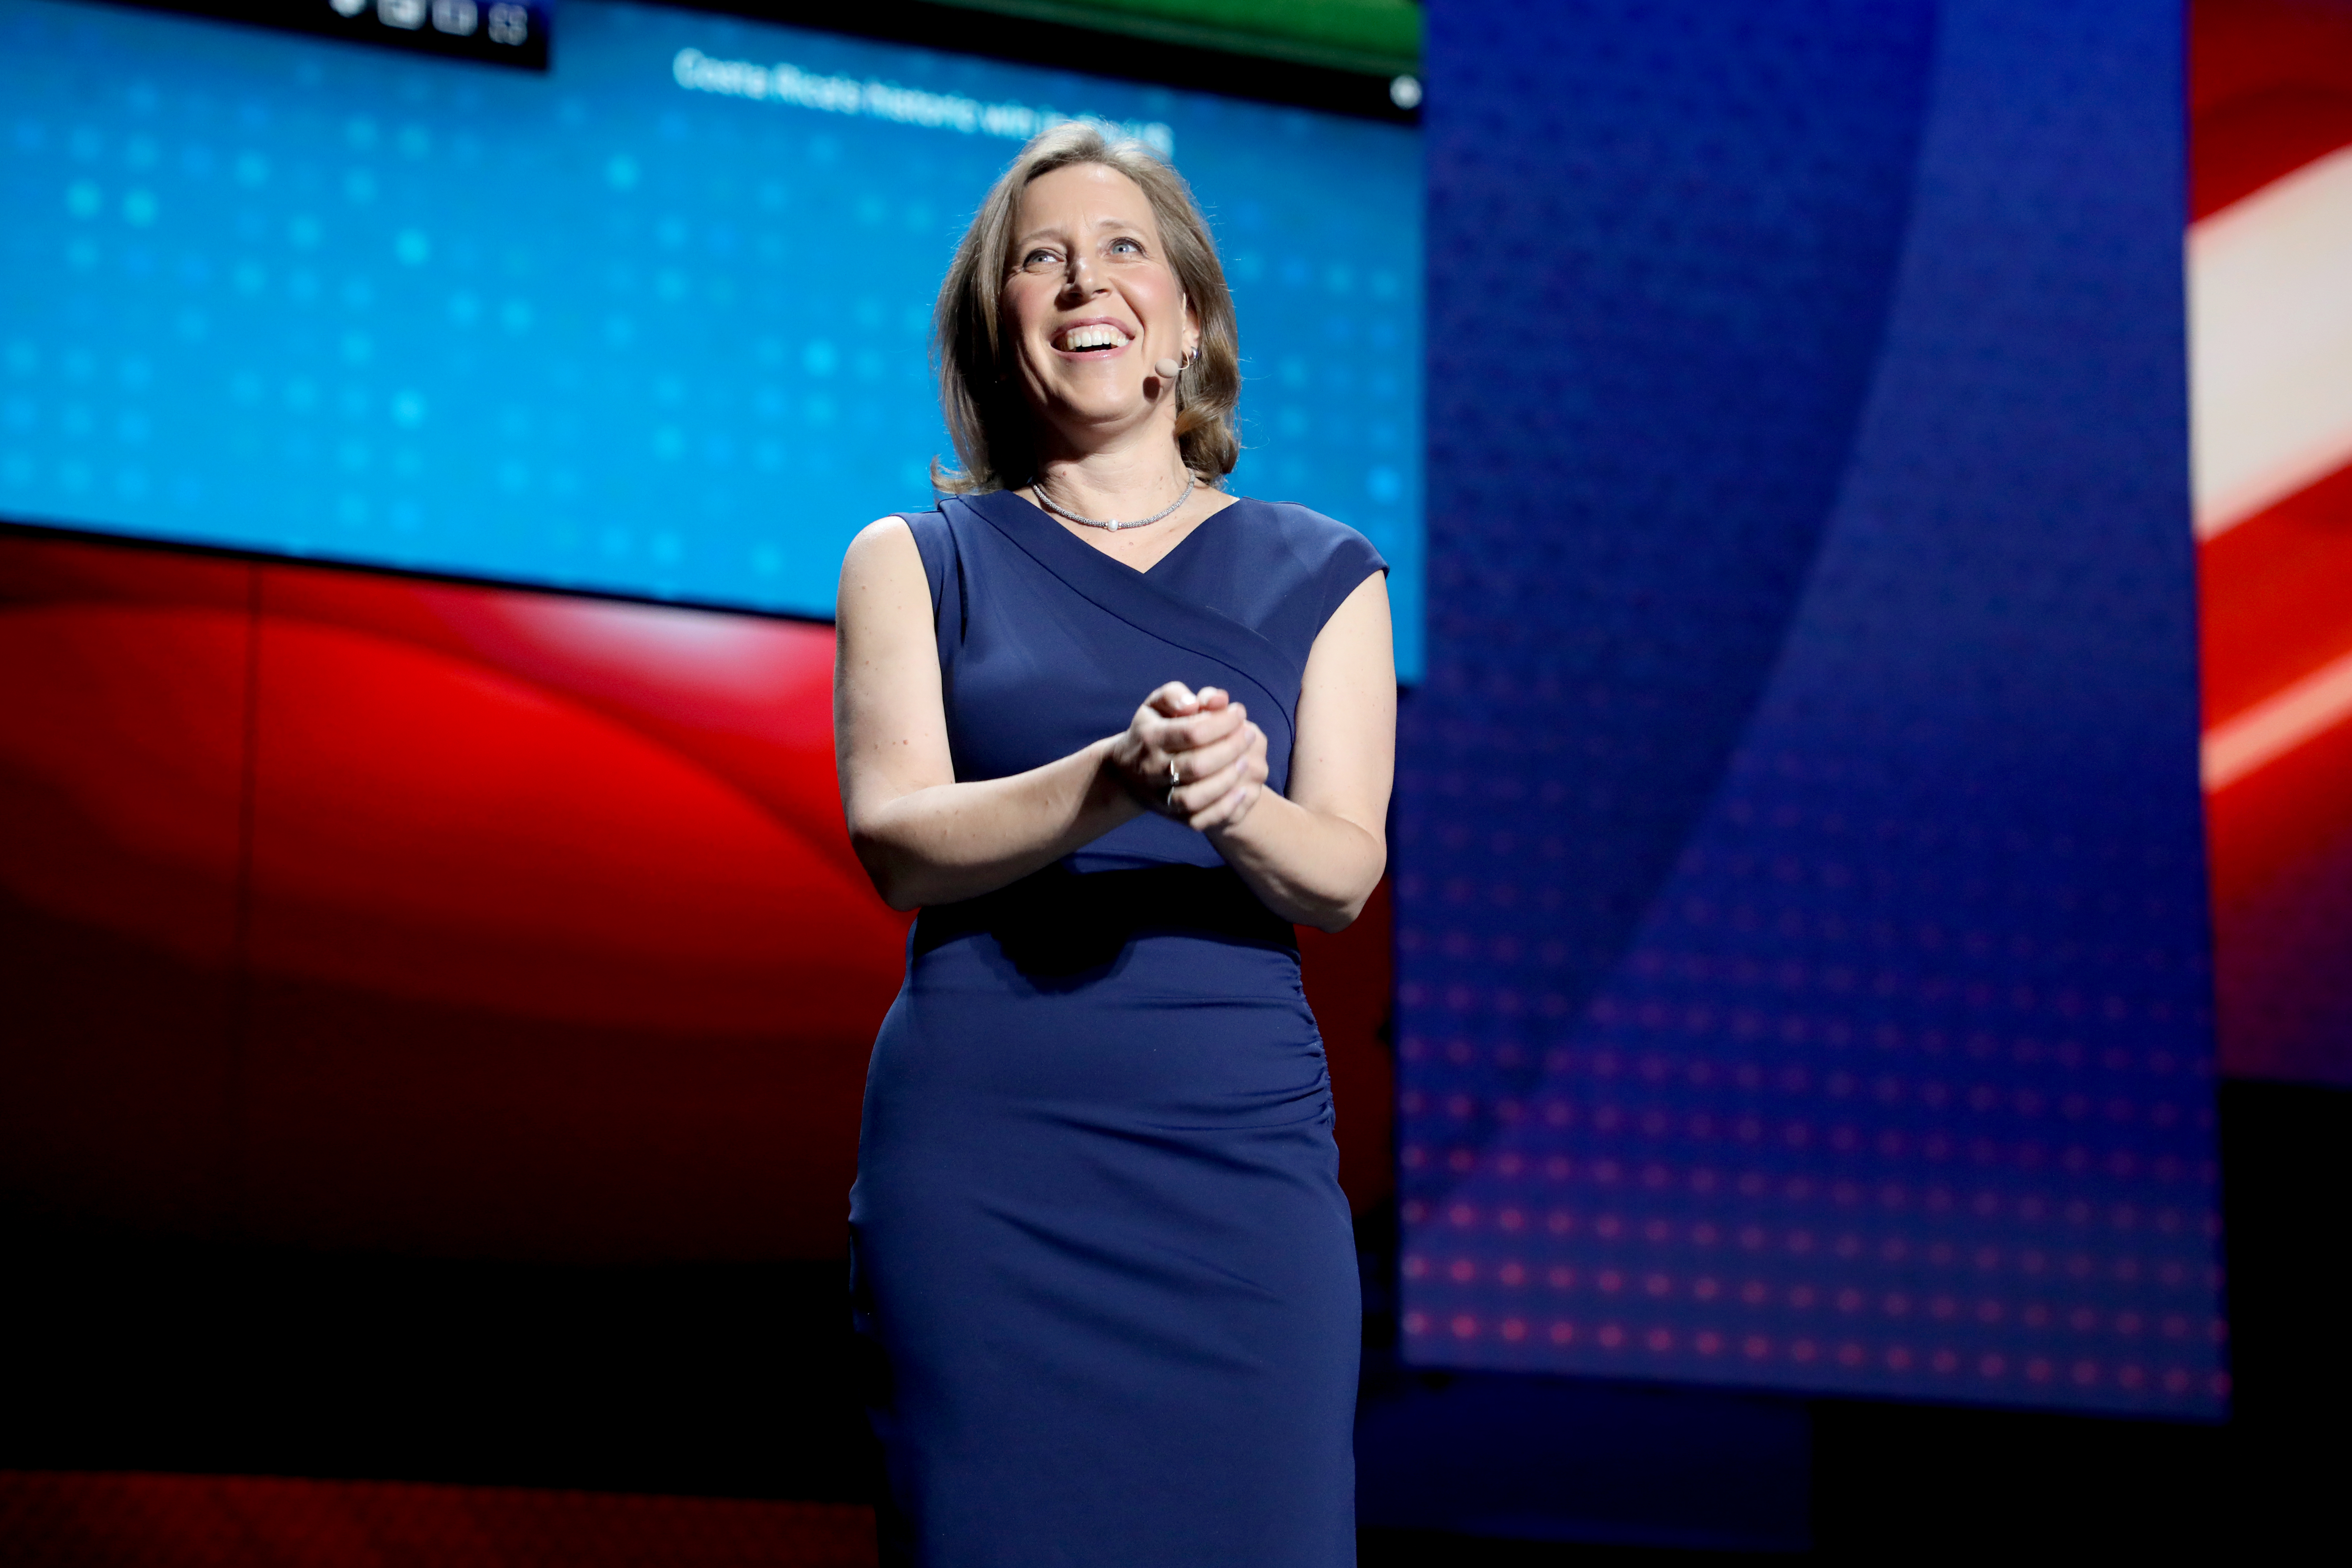 YouTube CEO Susan Wojcicki speaks onstage.